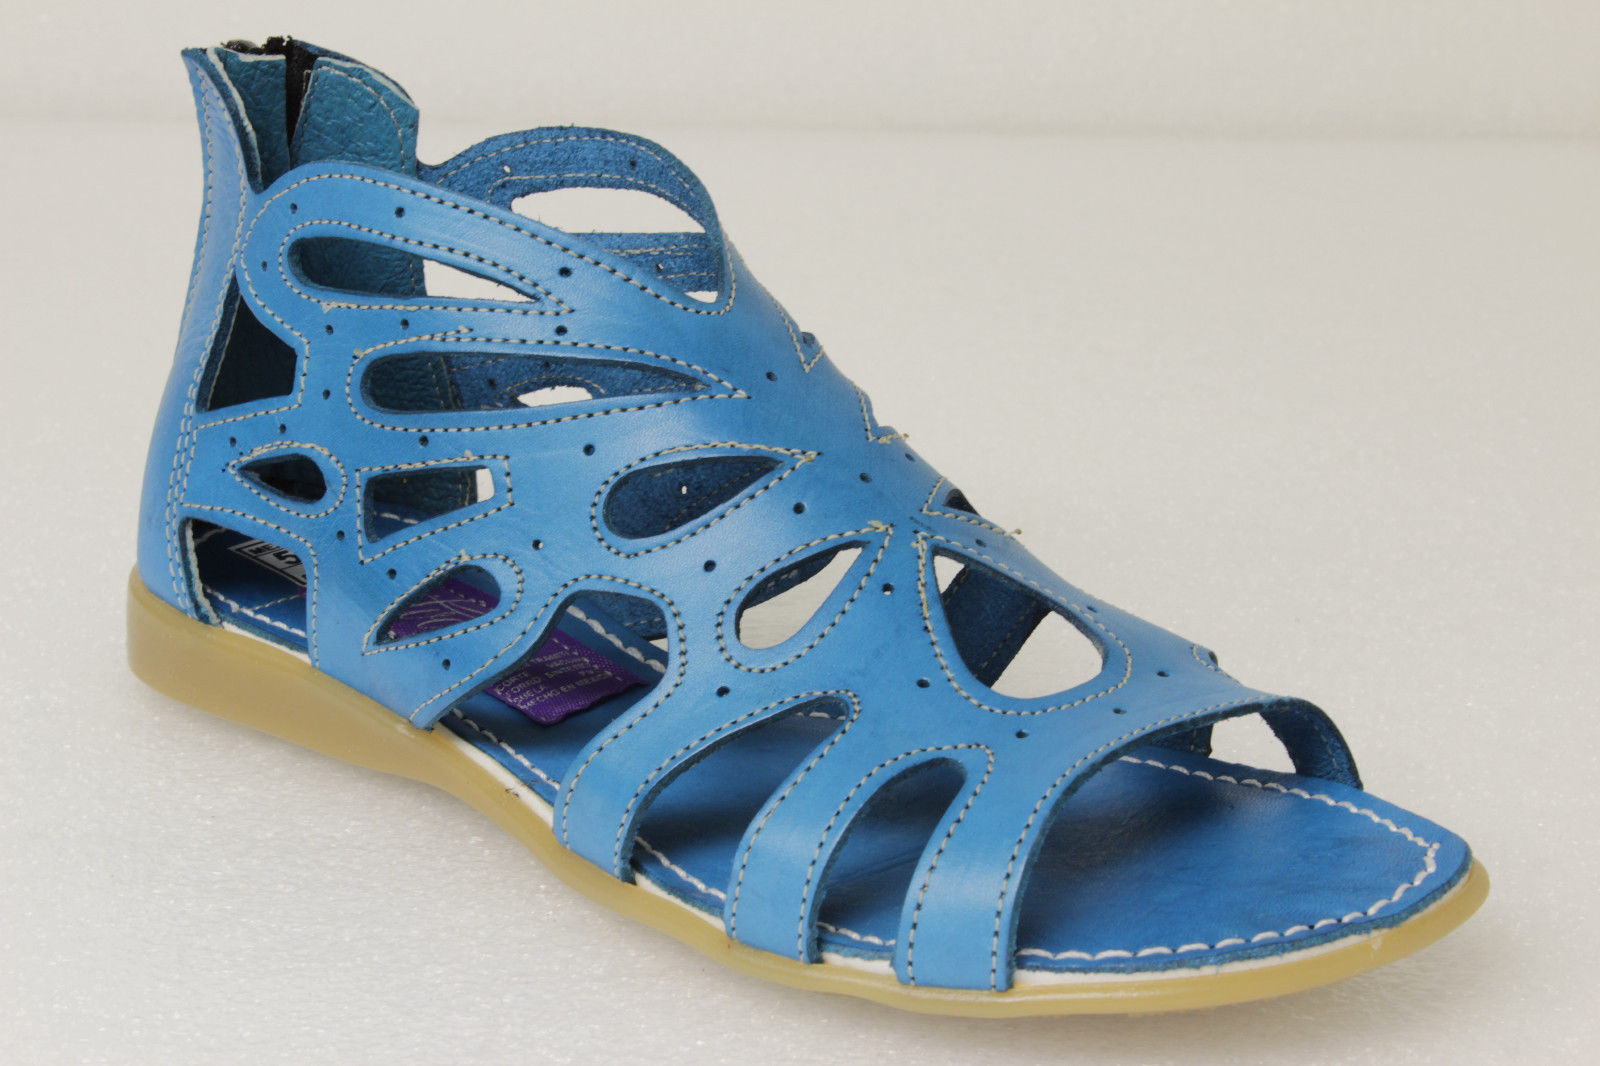 a1b02b43f Womens Blue Mexican Huaraches Genuine Leather Zip Up Ankle Sandals ...